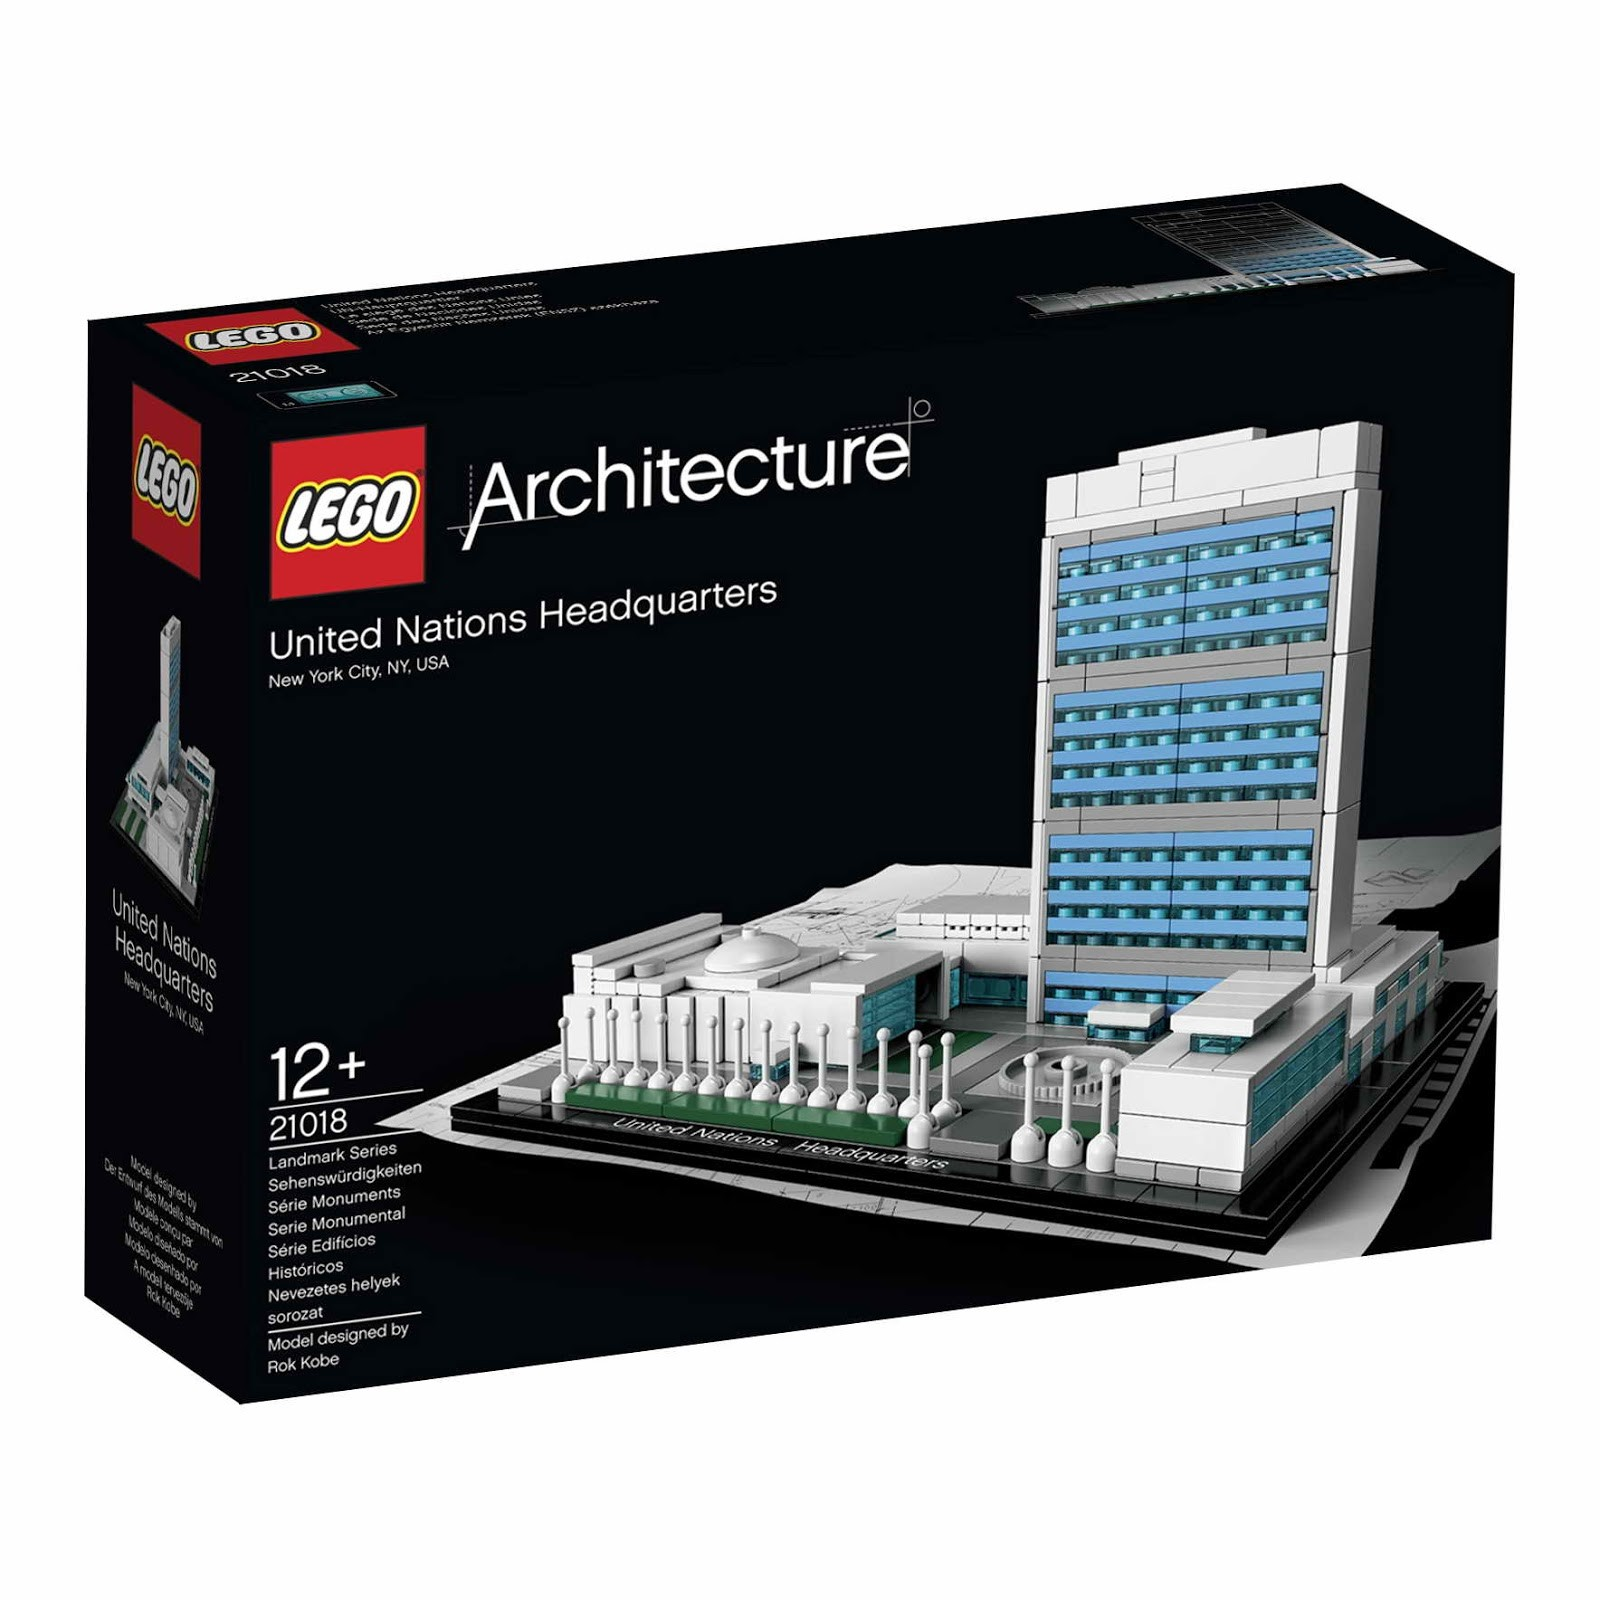 LEGO® Architecture Landmark Series: The United Nations Headquarters